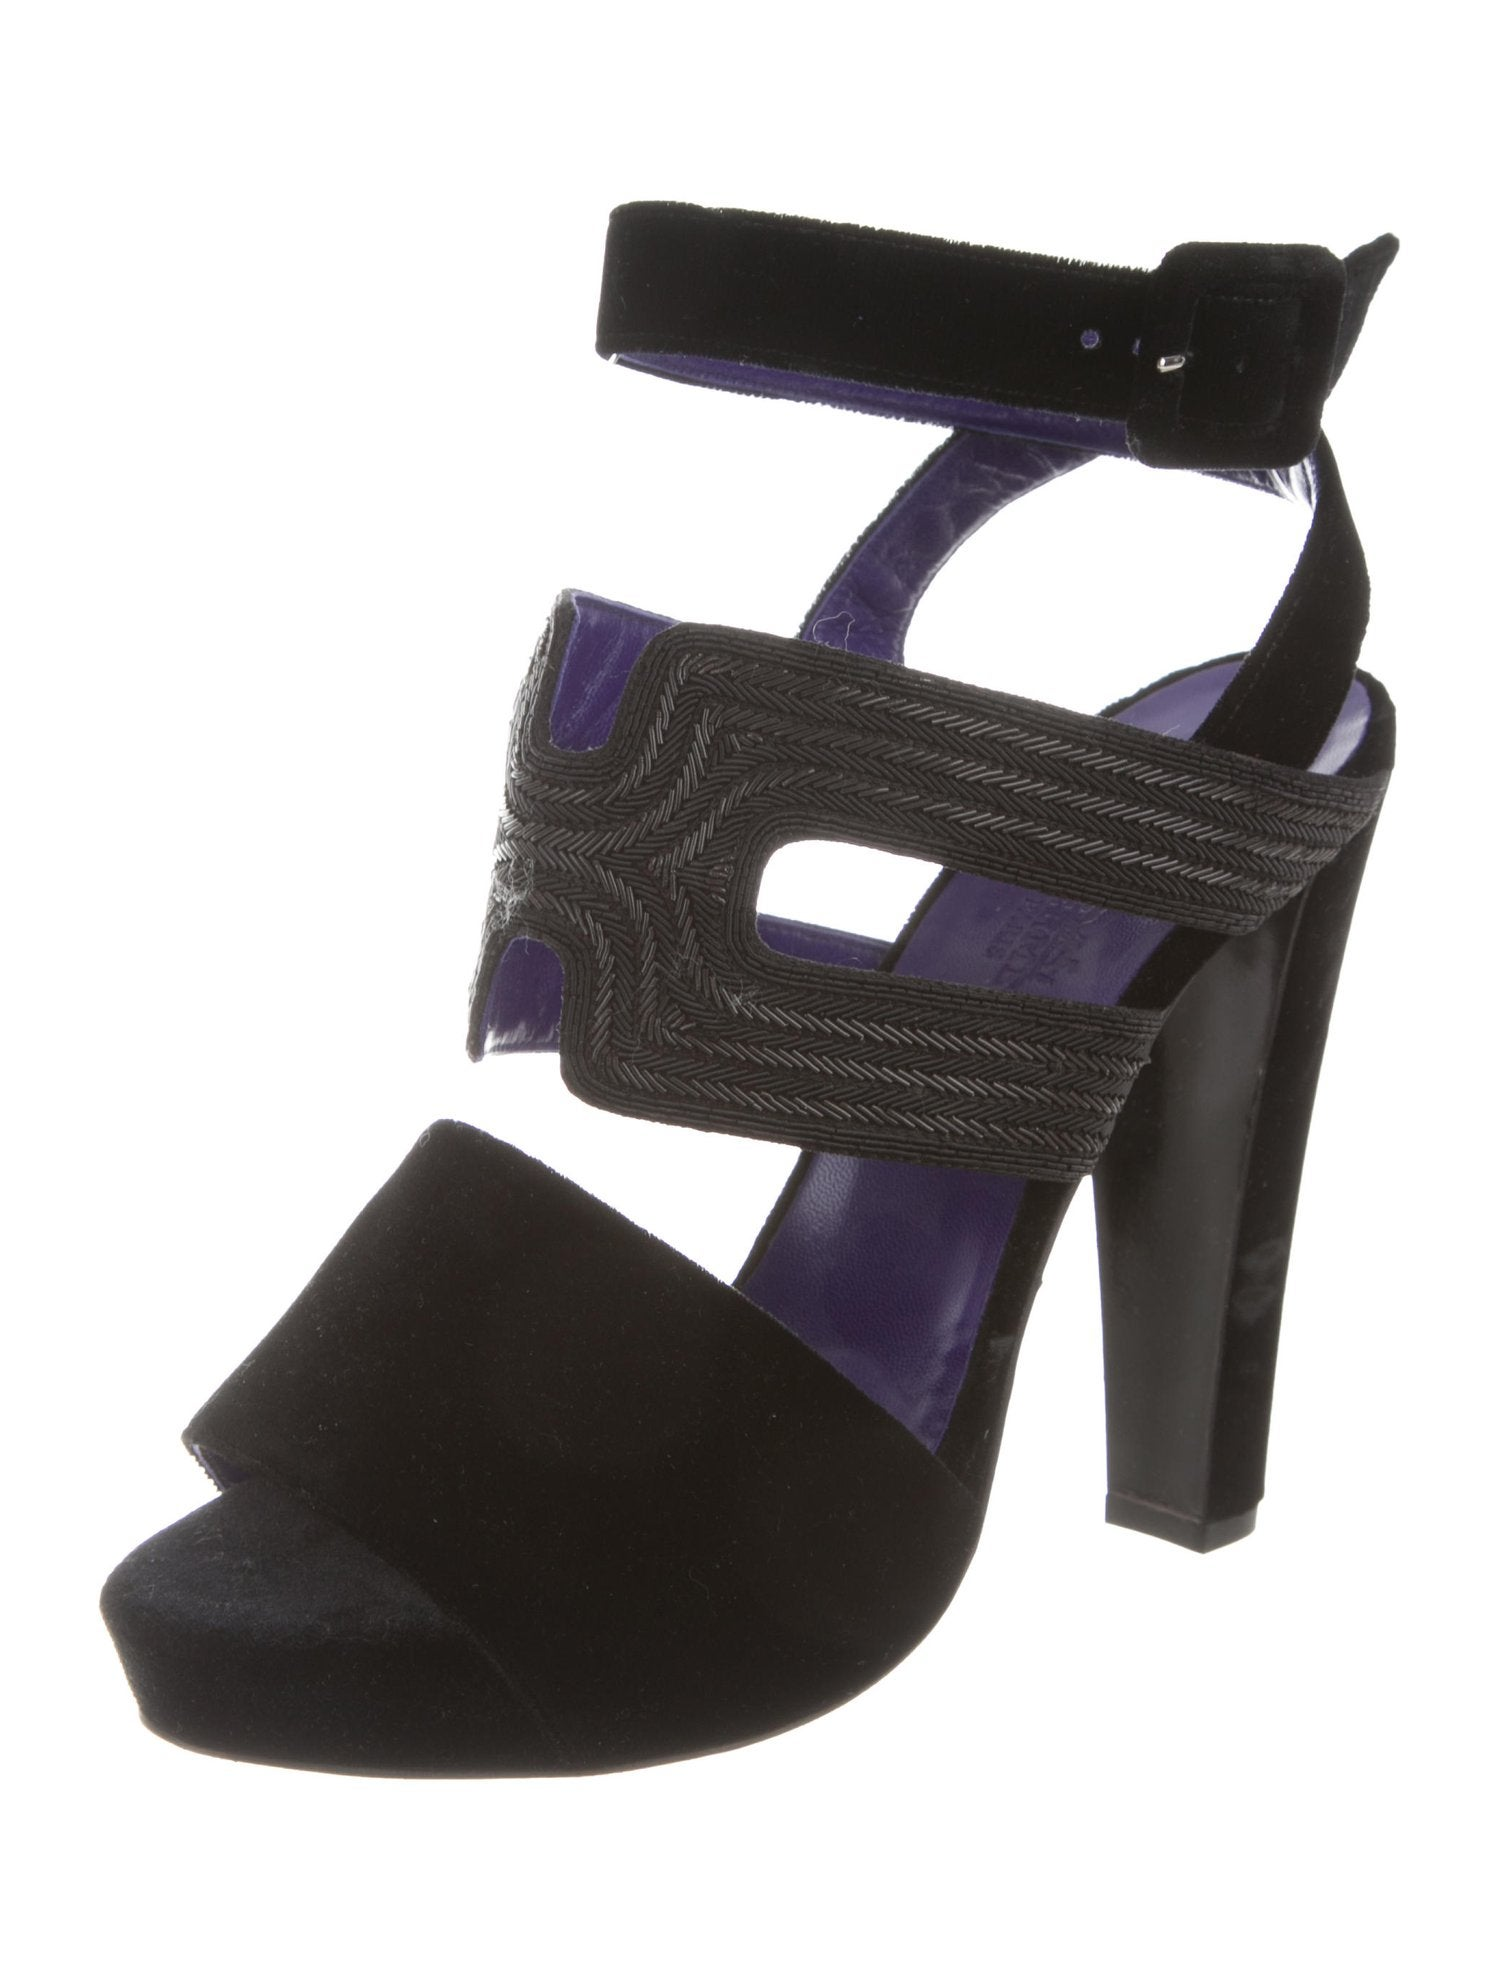 a76bf87f7140 HERMES NEW Black Purple Bead Strappy Evening Sandals Heels For Sale at  1stdibs